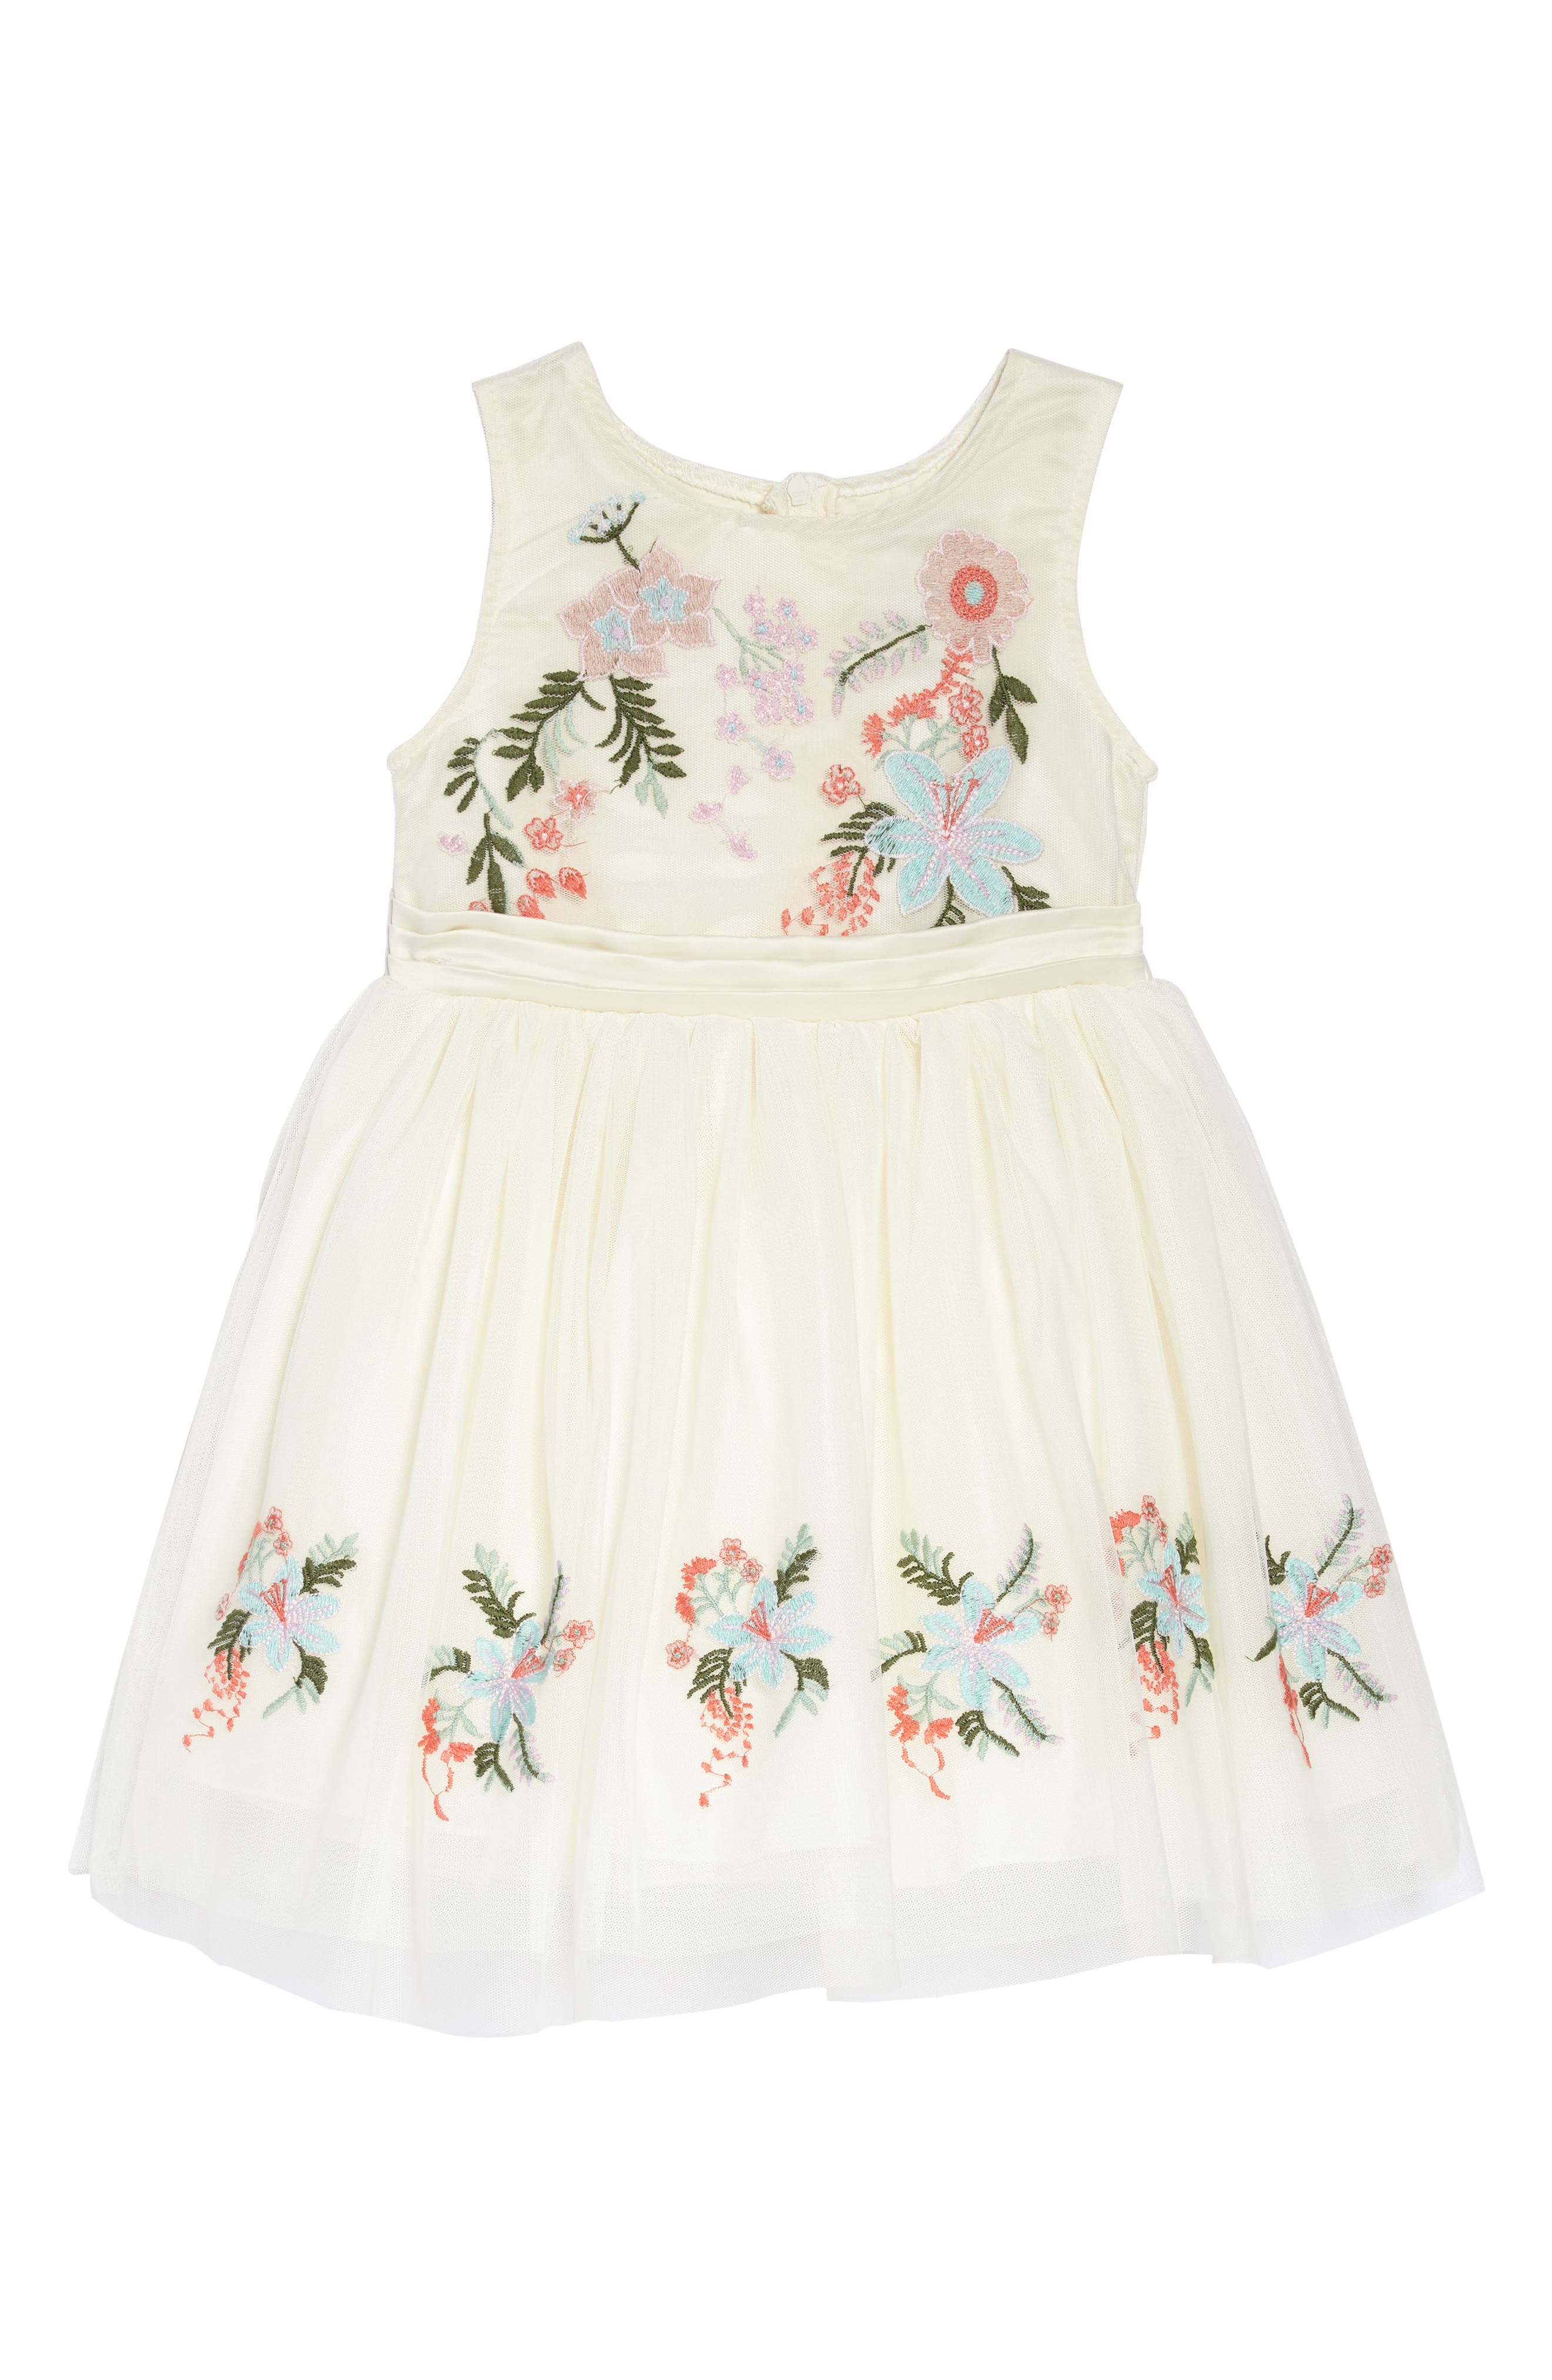 Flower Embroidered Party Dress,                         Main,                         color, Off-White